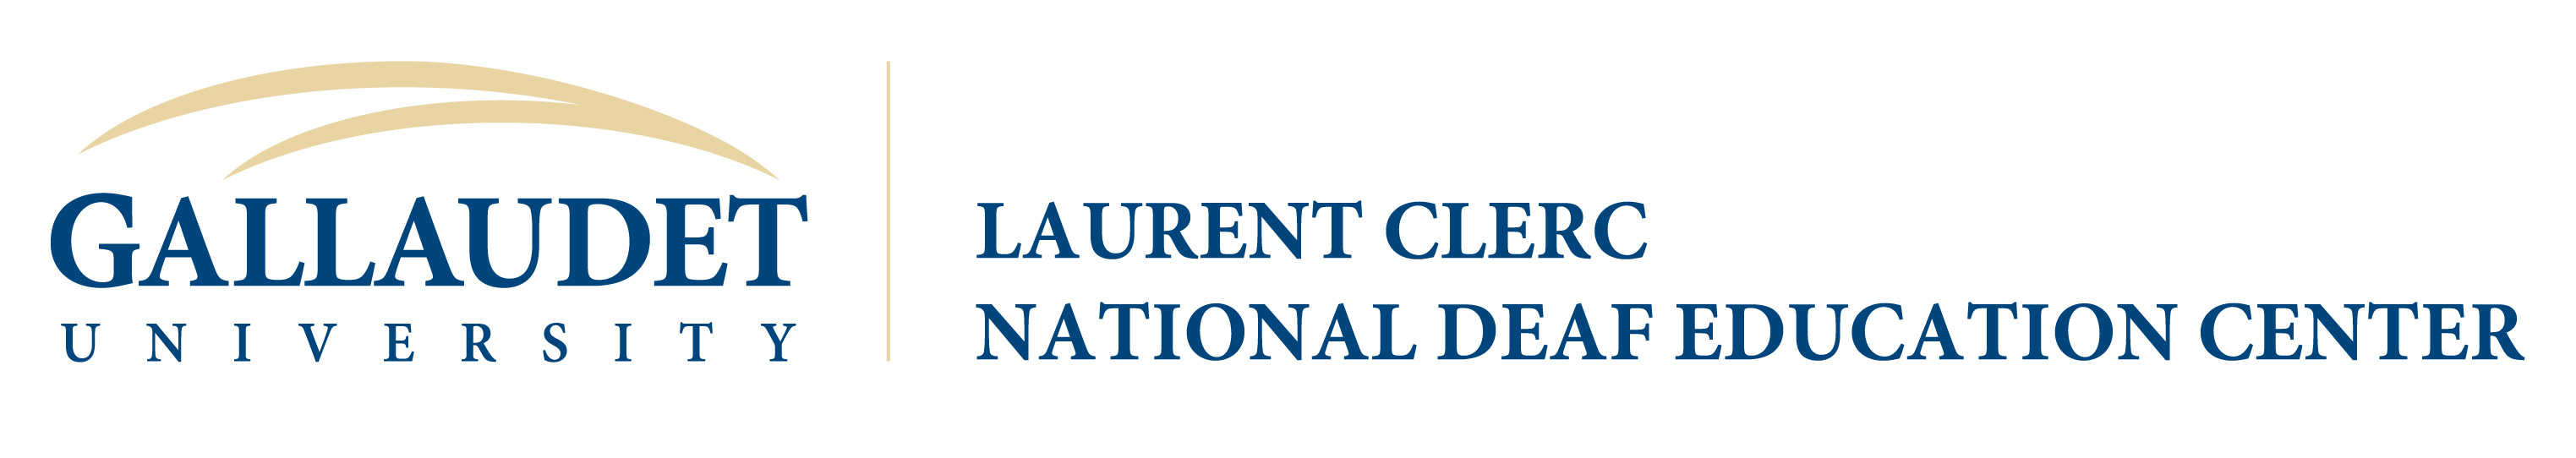 Laurent Clerc National Deaf Education Center Gallaudet University Logo